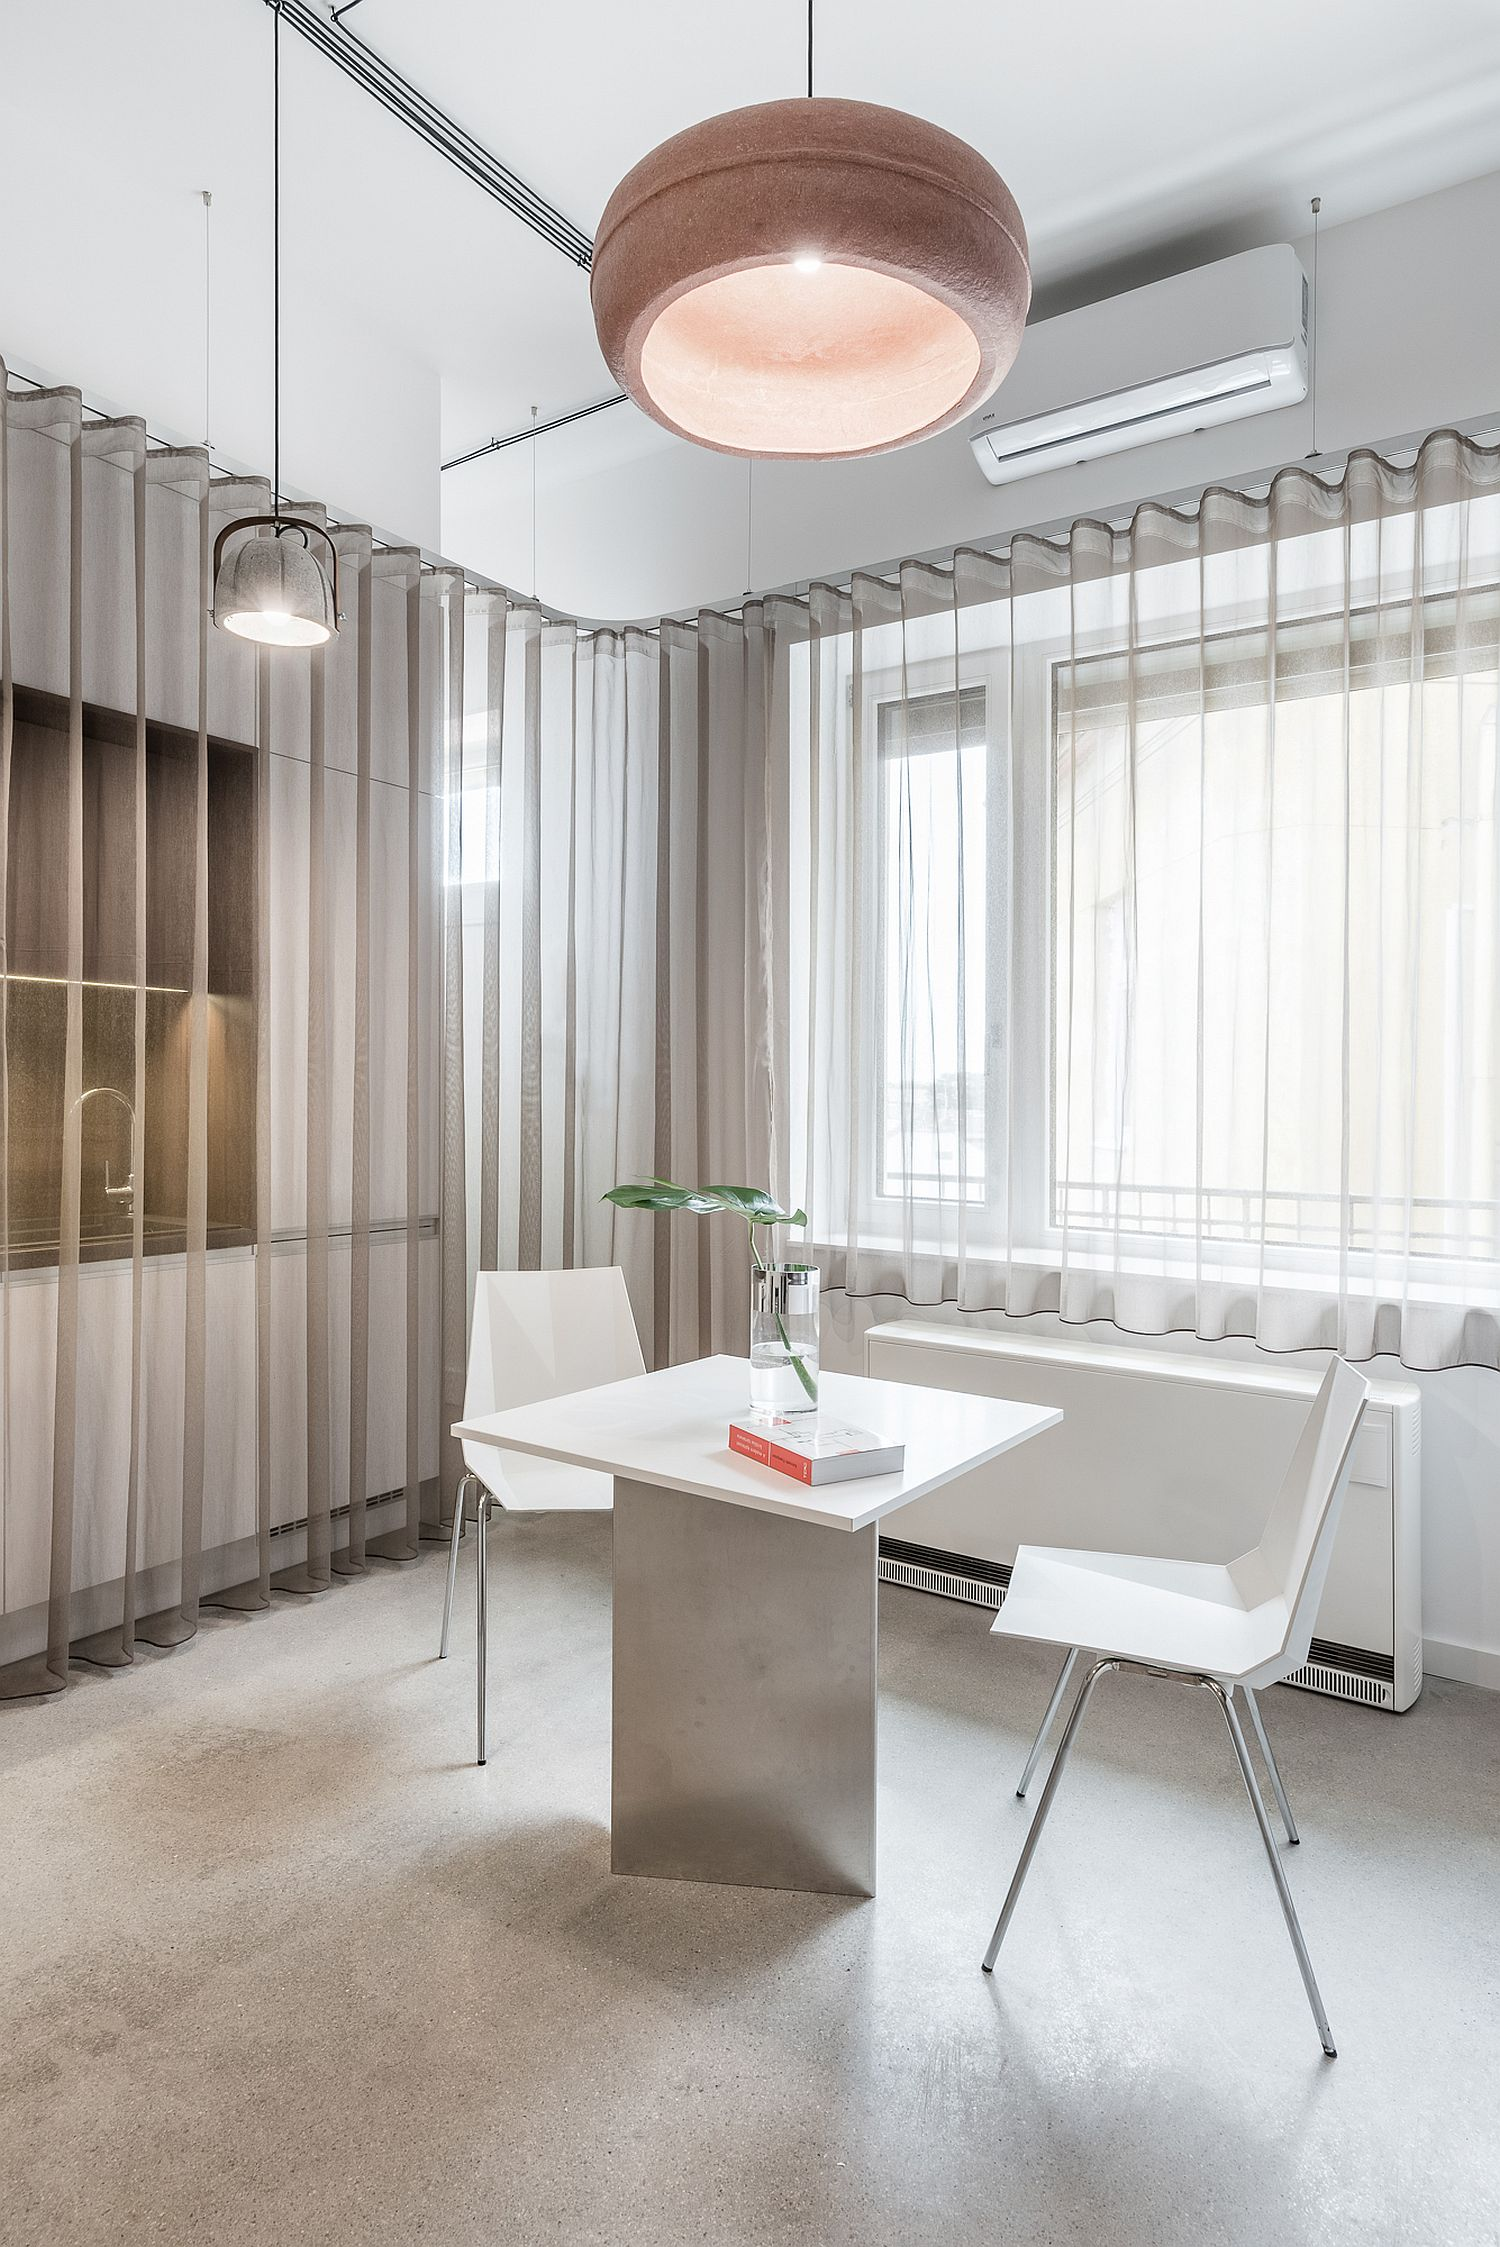 Soft-gray-drapes-add-warmth-to-the-polished-interior-with-ease